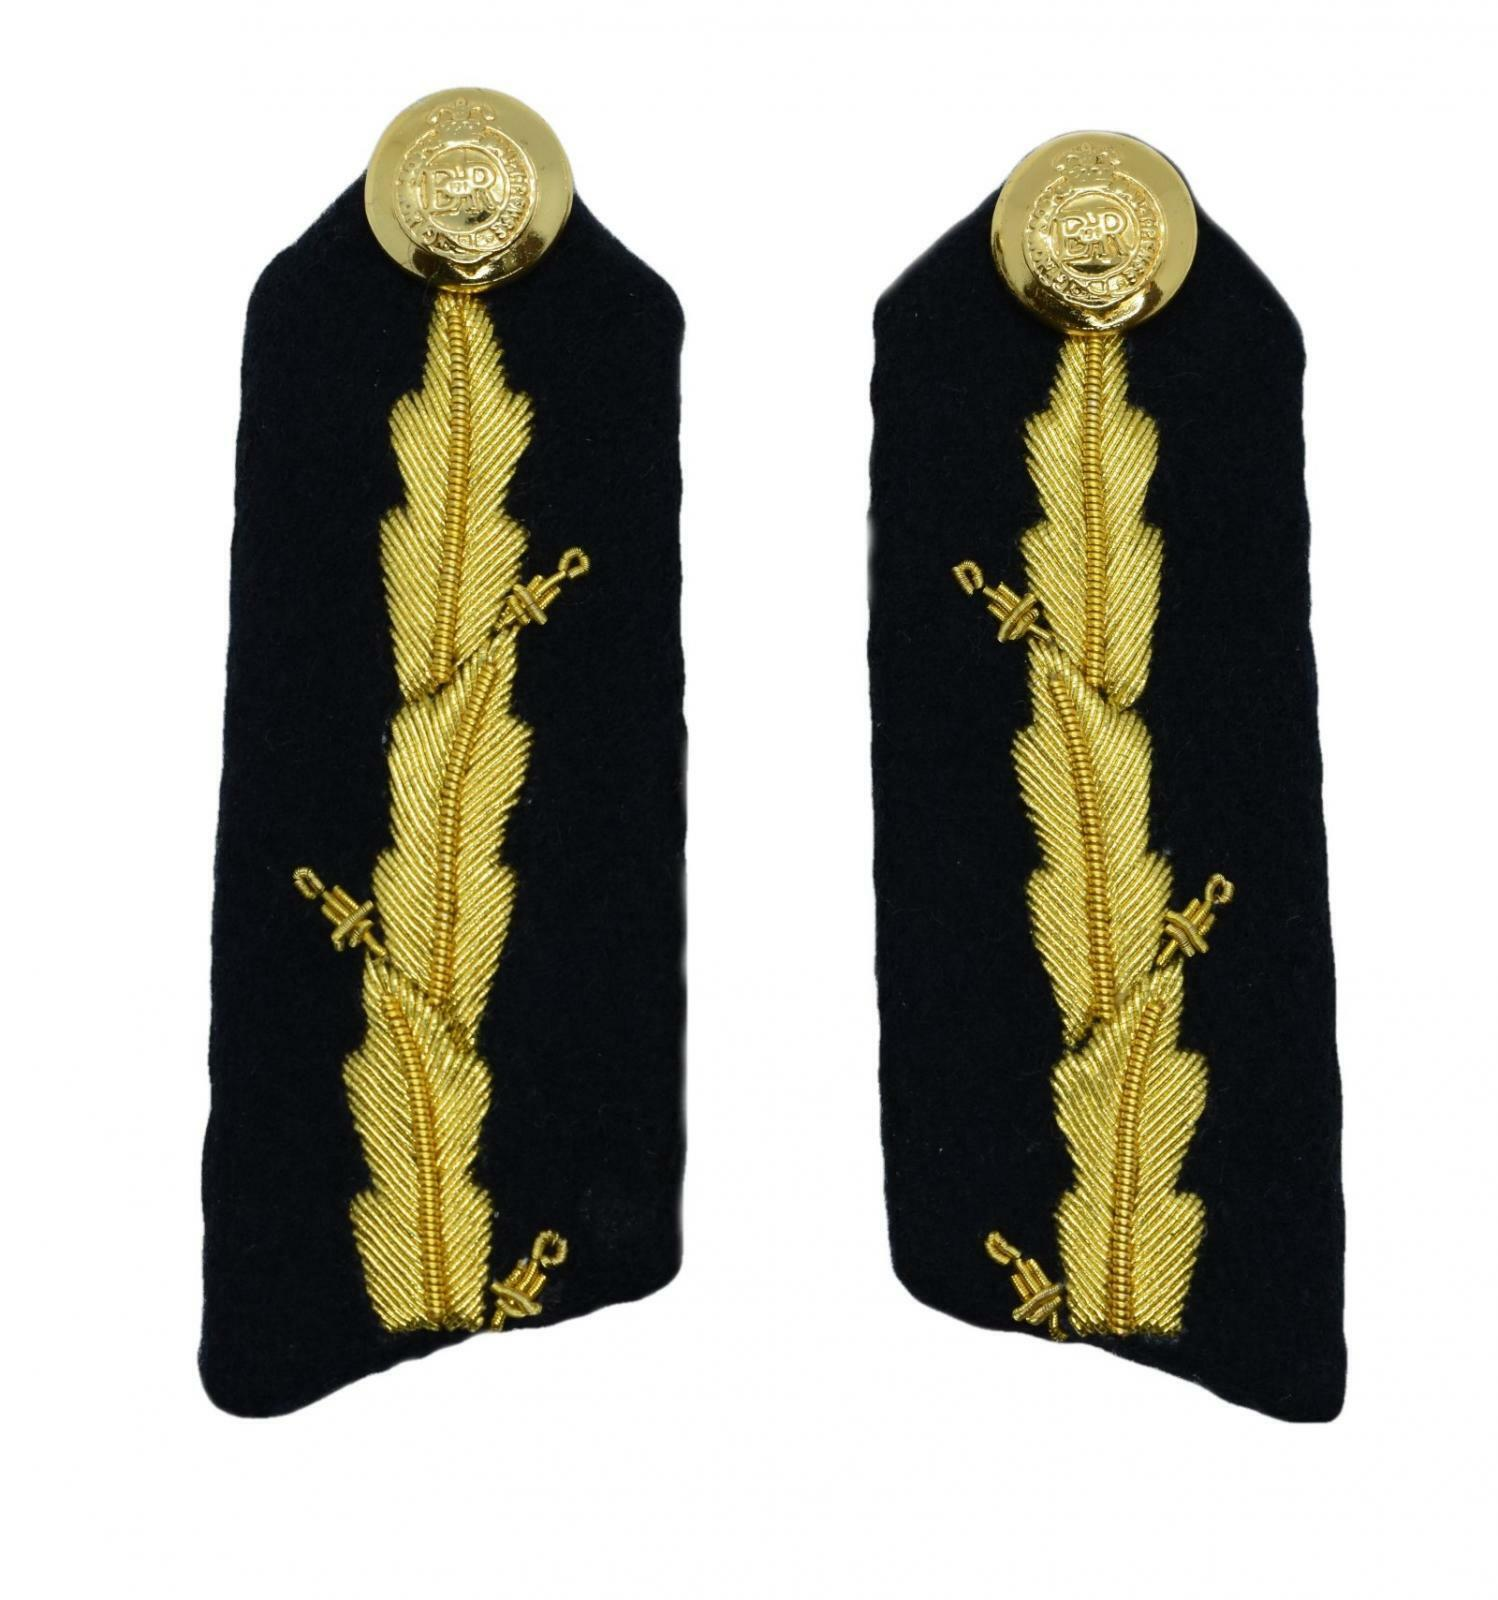 Gorget Gold 3 Leaves on black with Clip 3 3/4 Inch